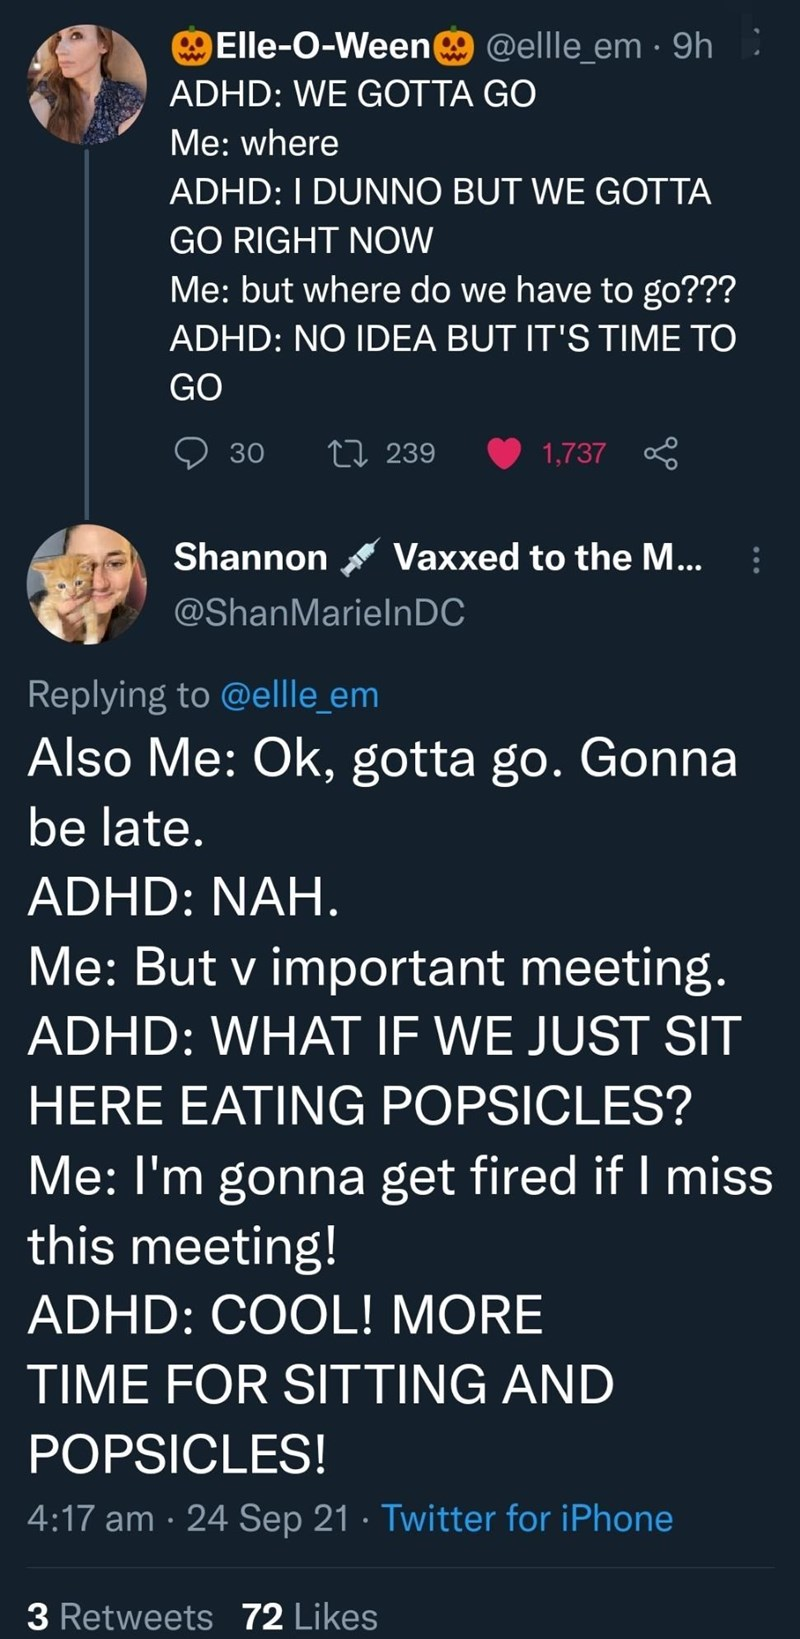 Font - Elle-O-Weene @ellle_em · 9h ADHD: WE GOTTA GO Мe: where ADHD: I DUNNO BUT WE GOTTA GO RIGHT NOW Me: but where do we have to go??? ADHD: NO IDEA BUT IT'S TIME TO GO 30 27 239 1,737 Shannon Vaxxed to the M... @ShanMarielnDC Replying to @ellle_em Also Me: Ok, gotta go. Gonna be late. ADHD: NAH. Me: But v important meeting. ADHD: WHAT IF WE JUST SIT HERE EATING POPSICLES? Me: I'm gonna get fired if I miss this meeting! ADHD: COOL! MORE TIME FOR SITTING AND POPSICLES! 4:17 am · 24 Sep 21 · Twi